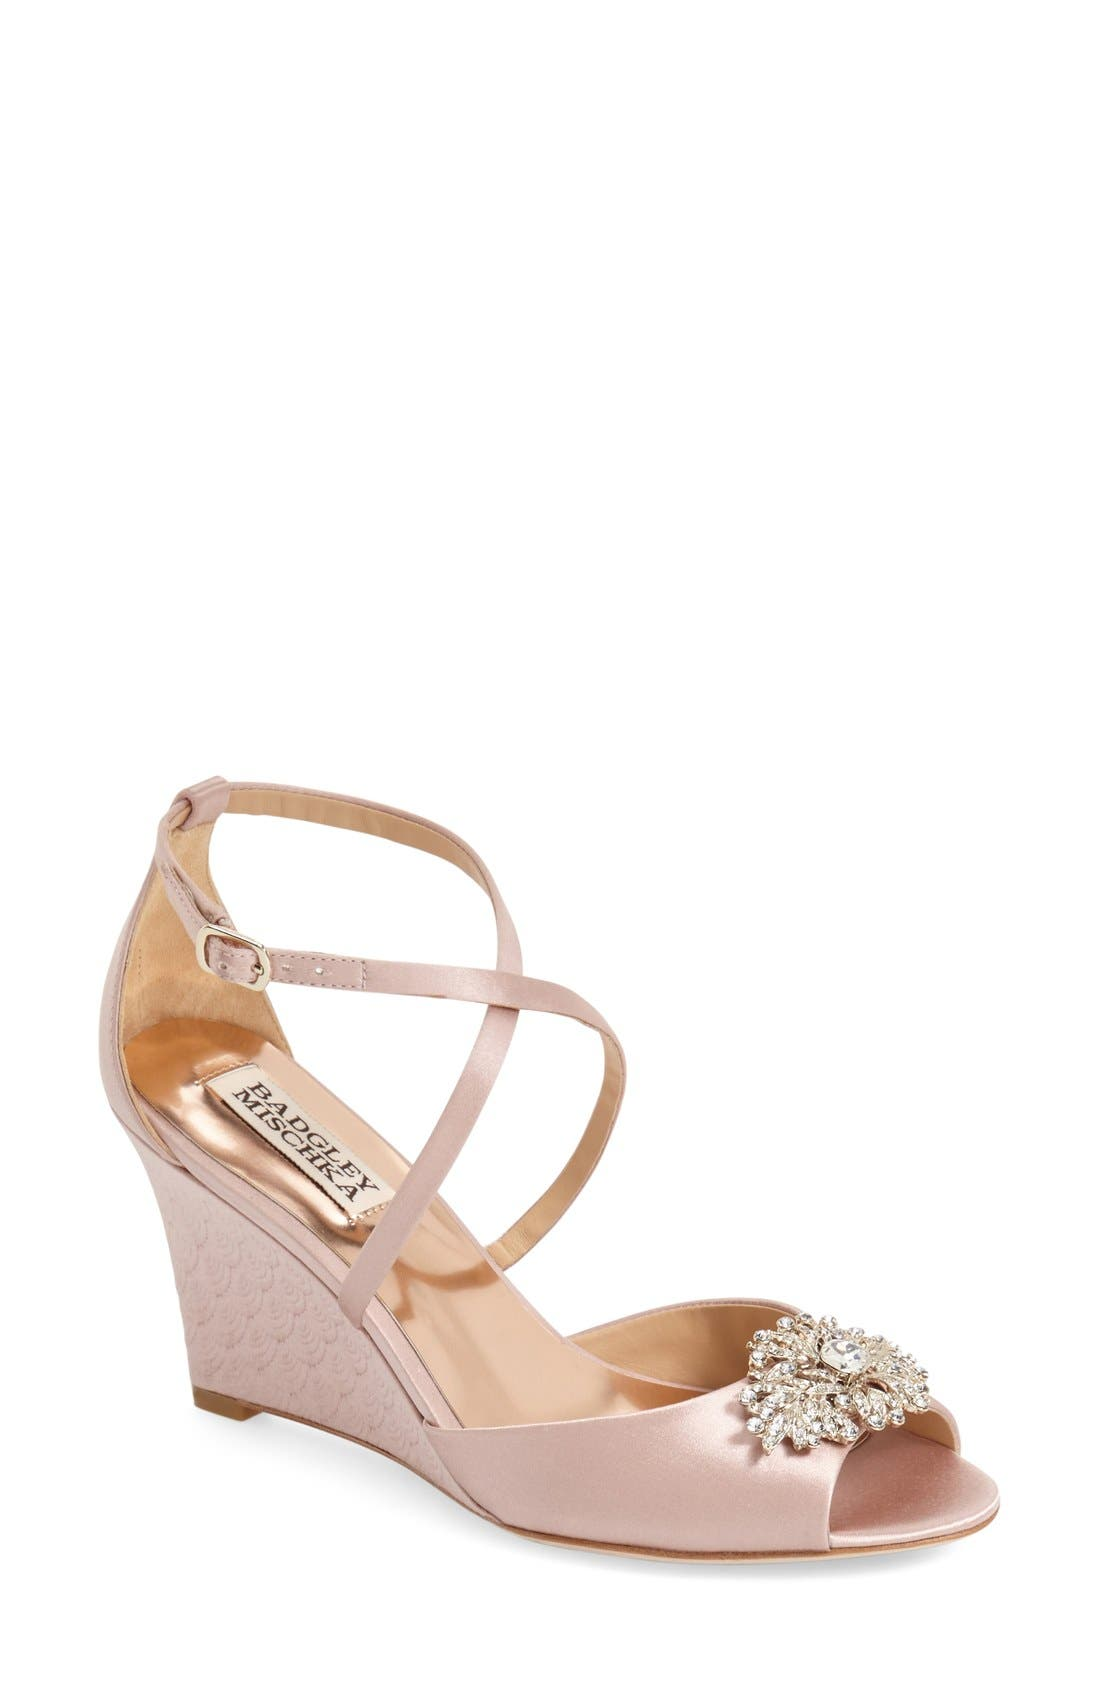 BADGLEY MISCHKA Abigail Peep Toe Wedge